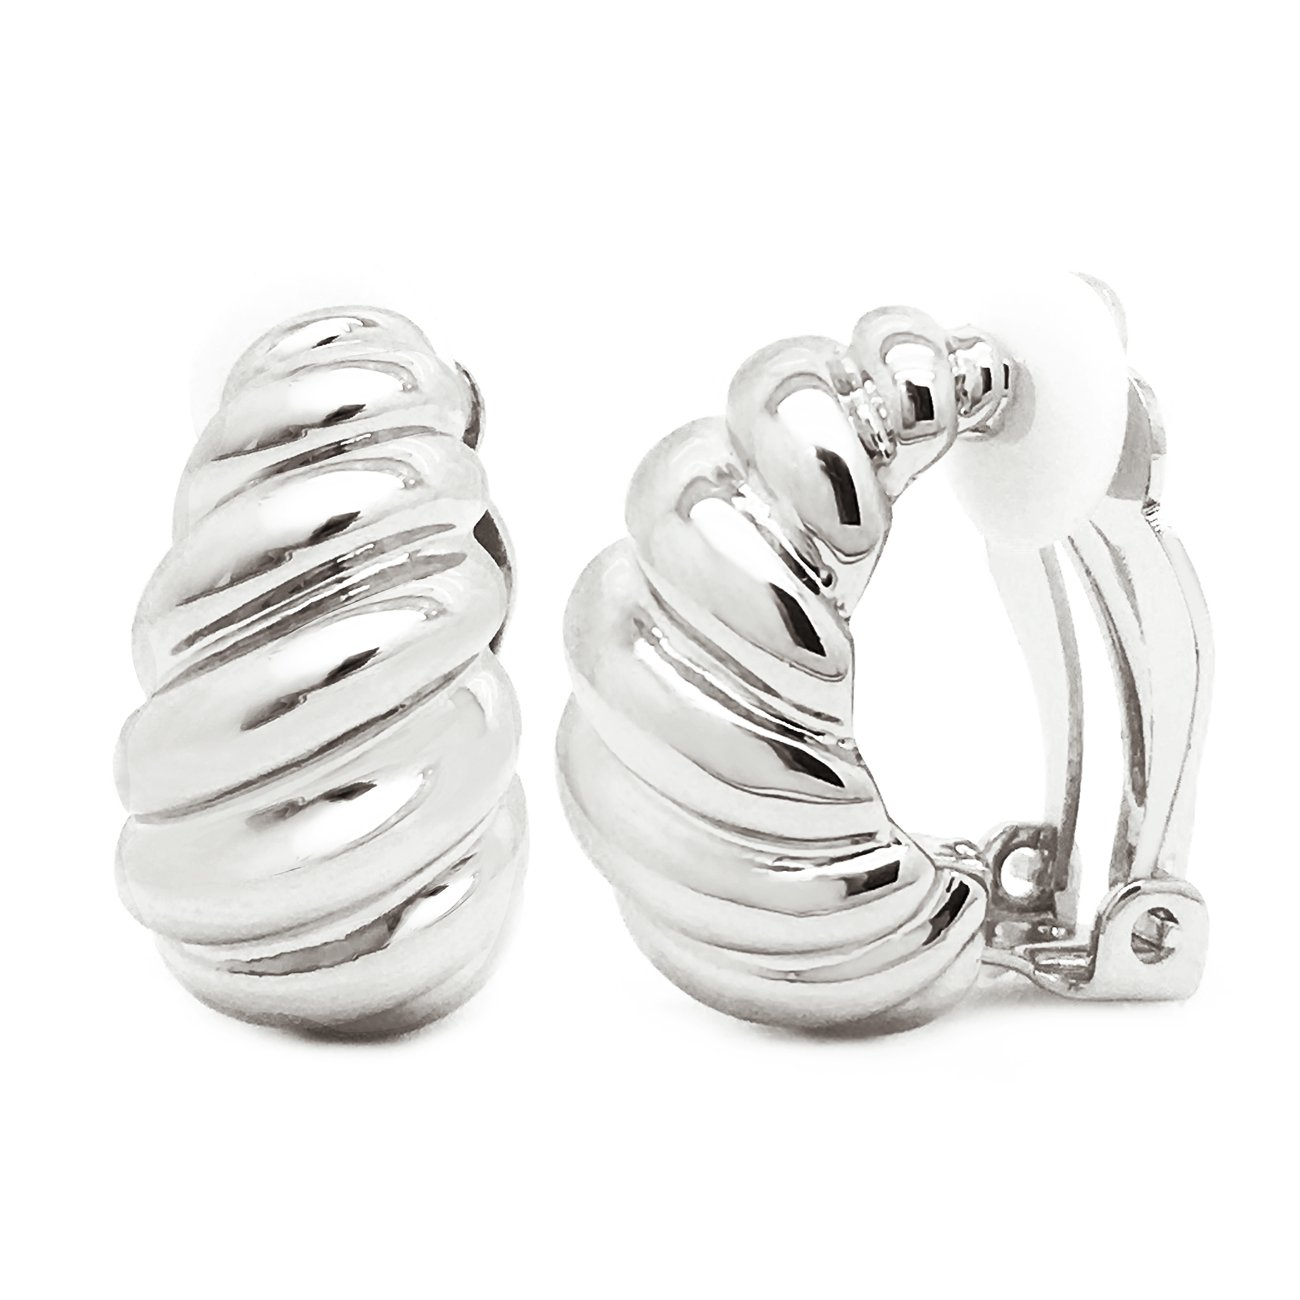 Clip on Earrings Shrimp Style Polished Rhodium Plated Classic Women Fashion